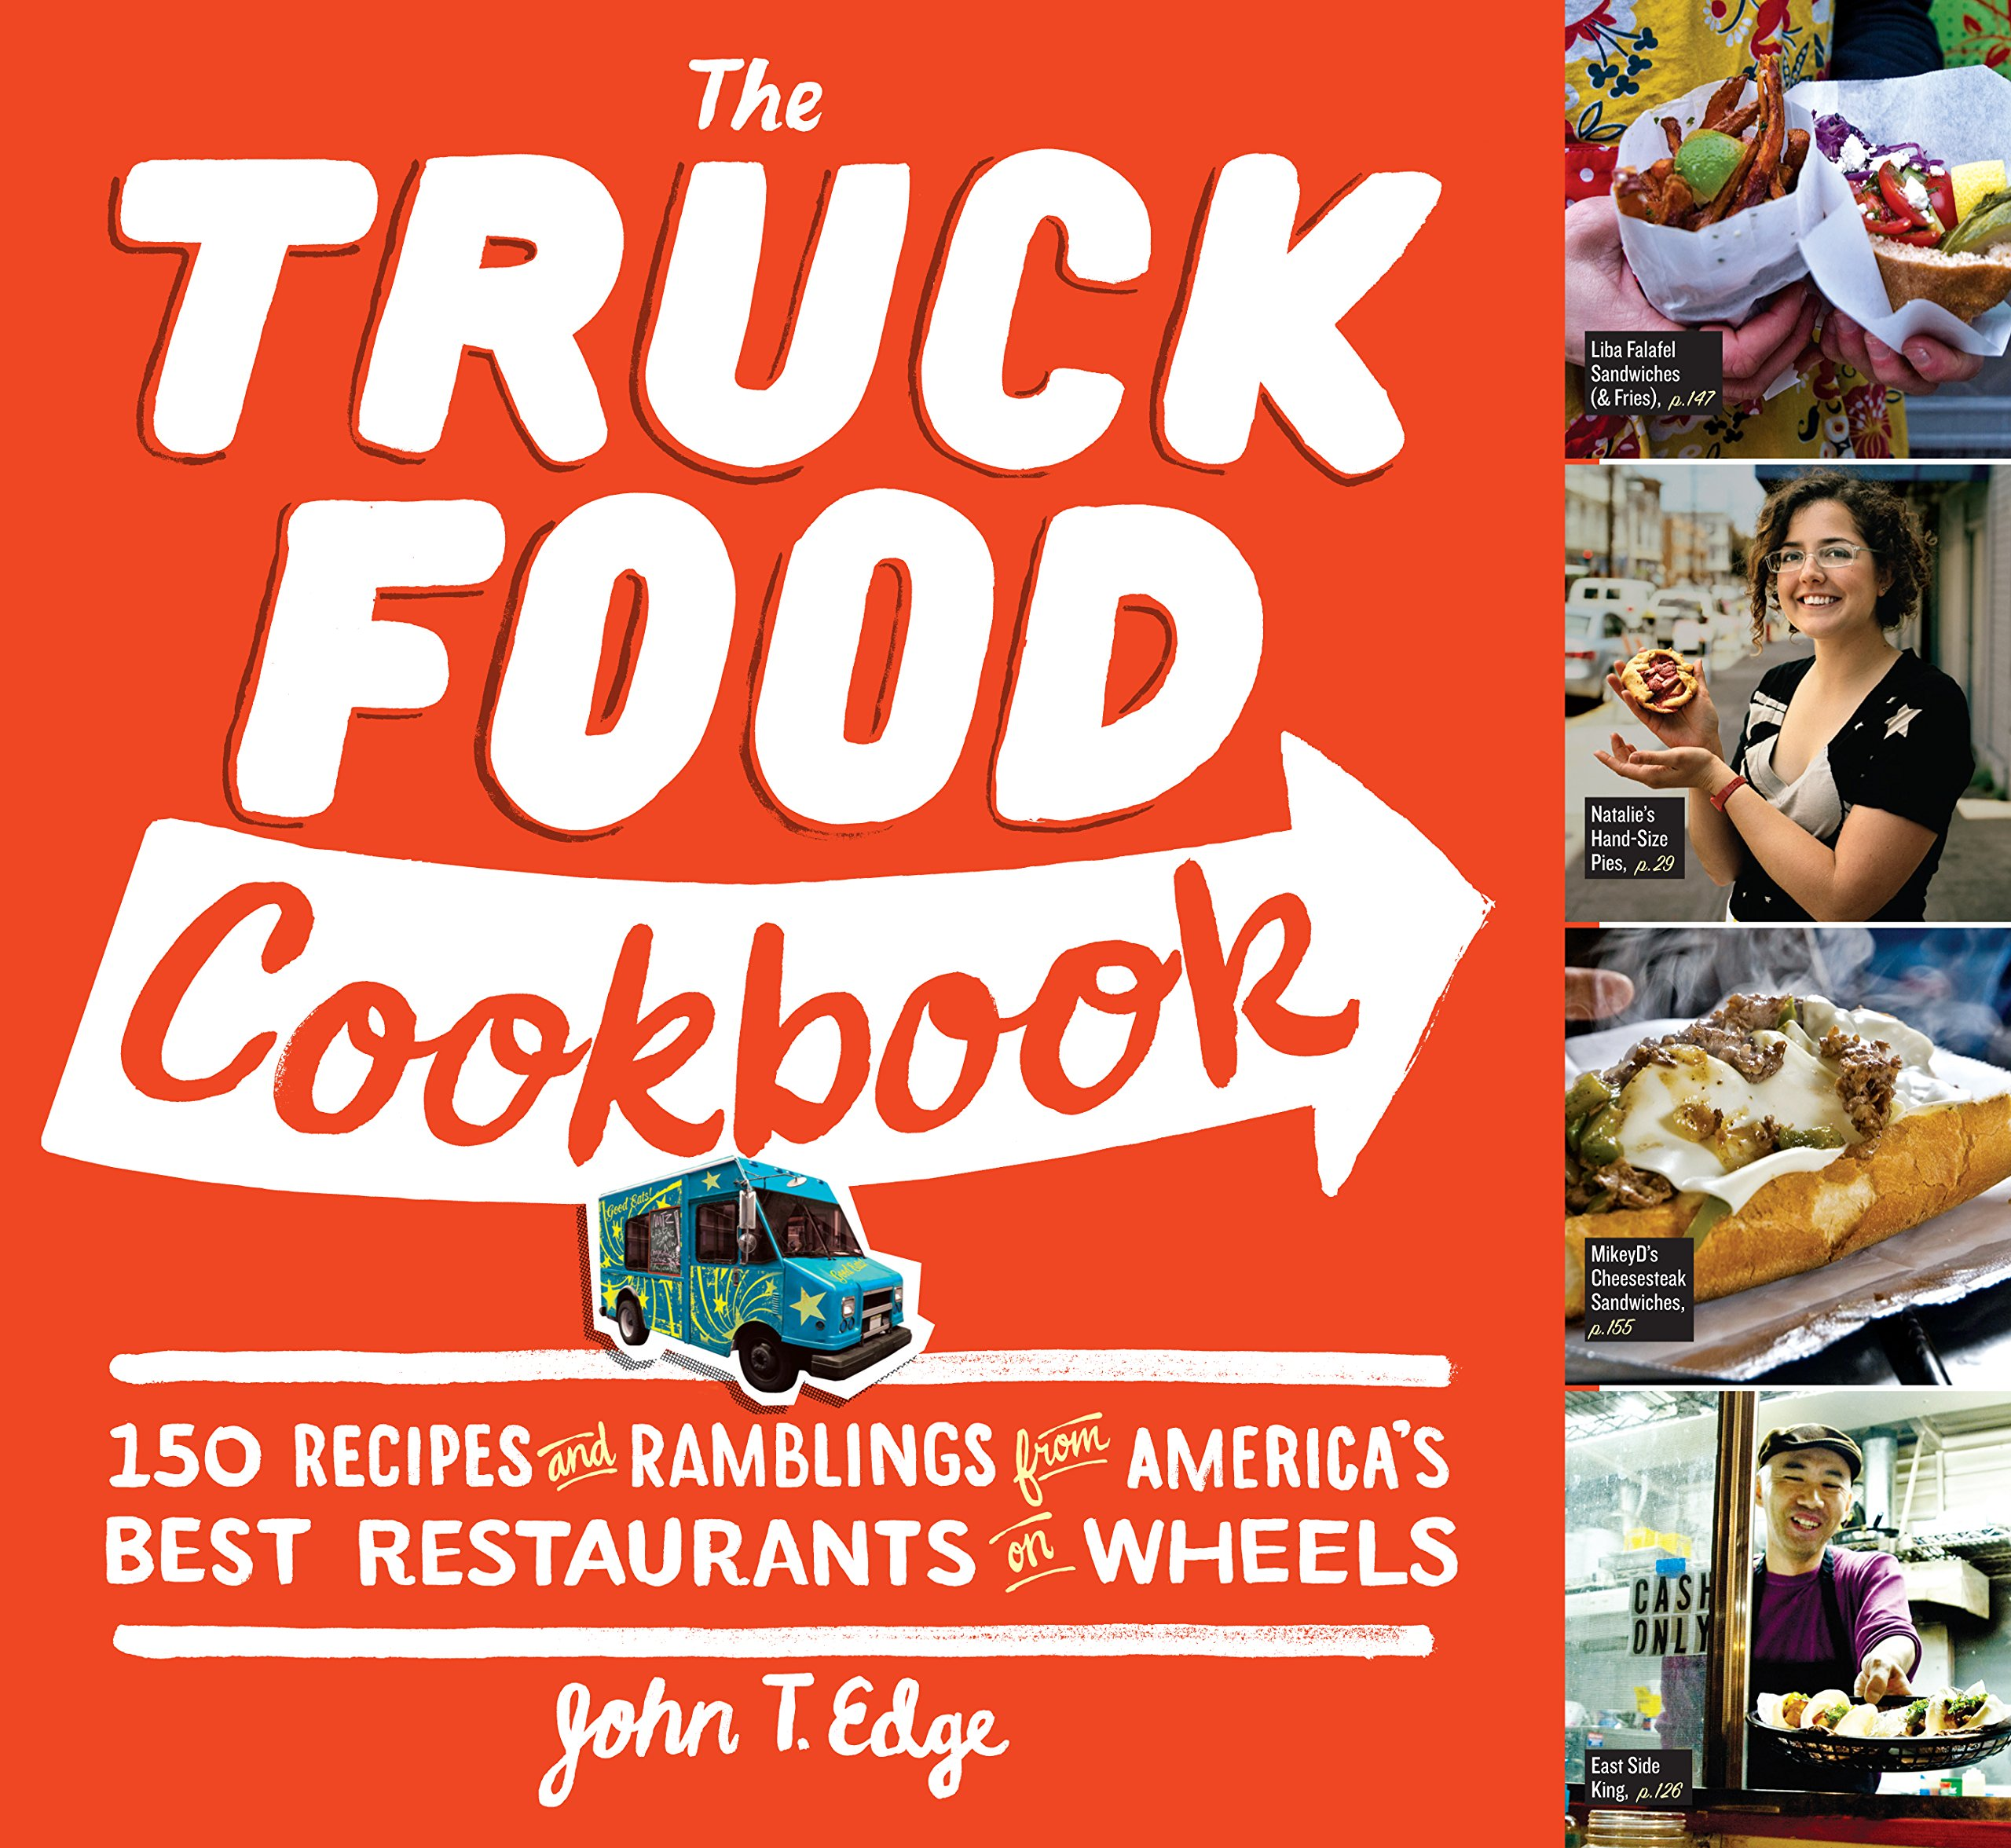 The truck food cookbook 150 recipes and ramblings from americas the truck food cookbook 150 recipes and ramblings from americas best restaurants on wheels john t edge 9780761156161 amazon books forumfinder Image collections